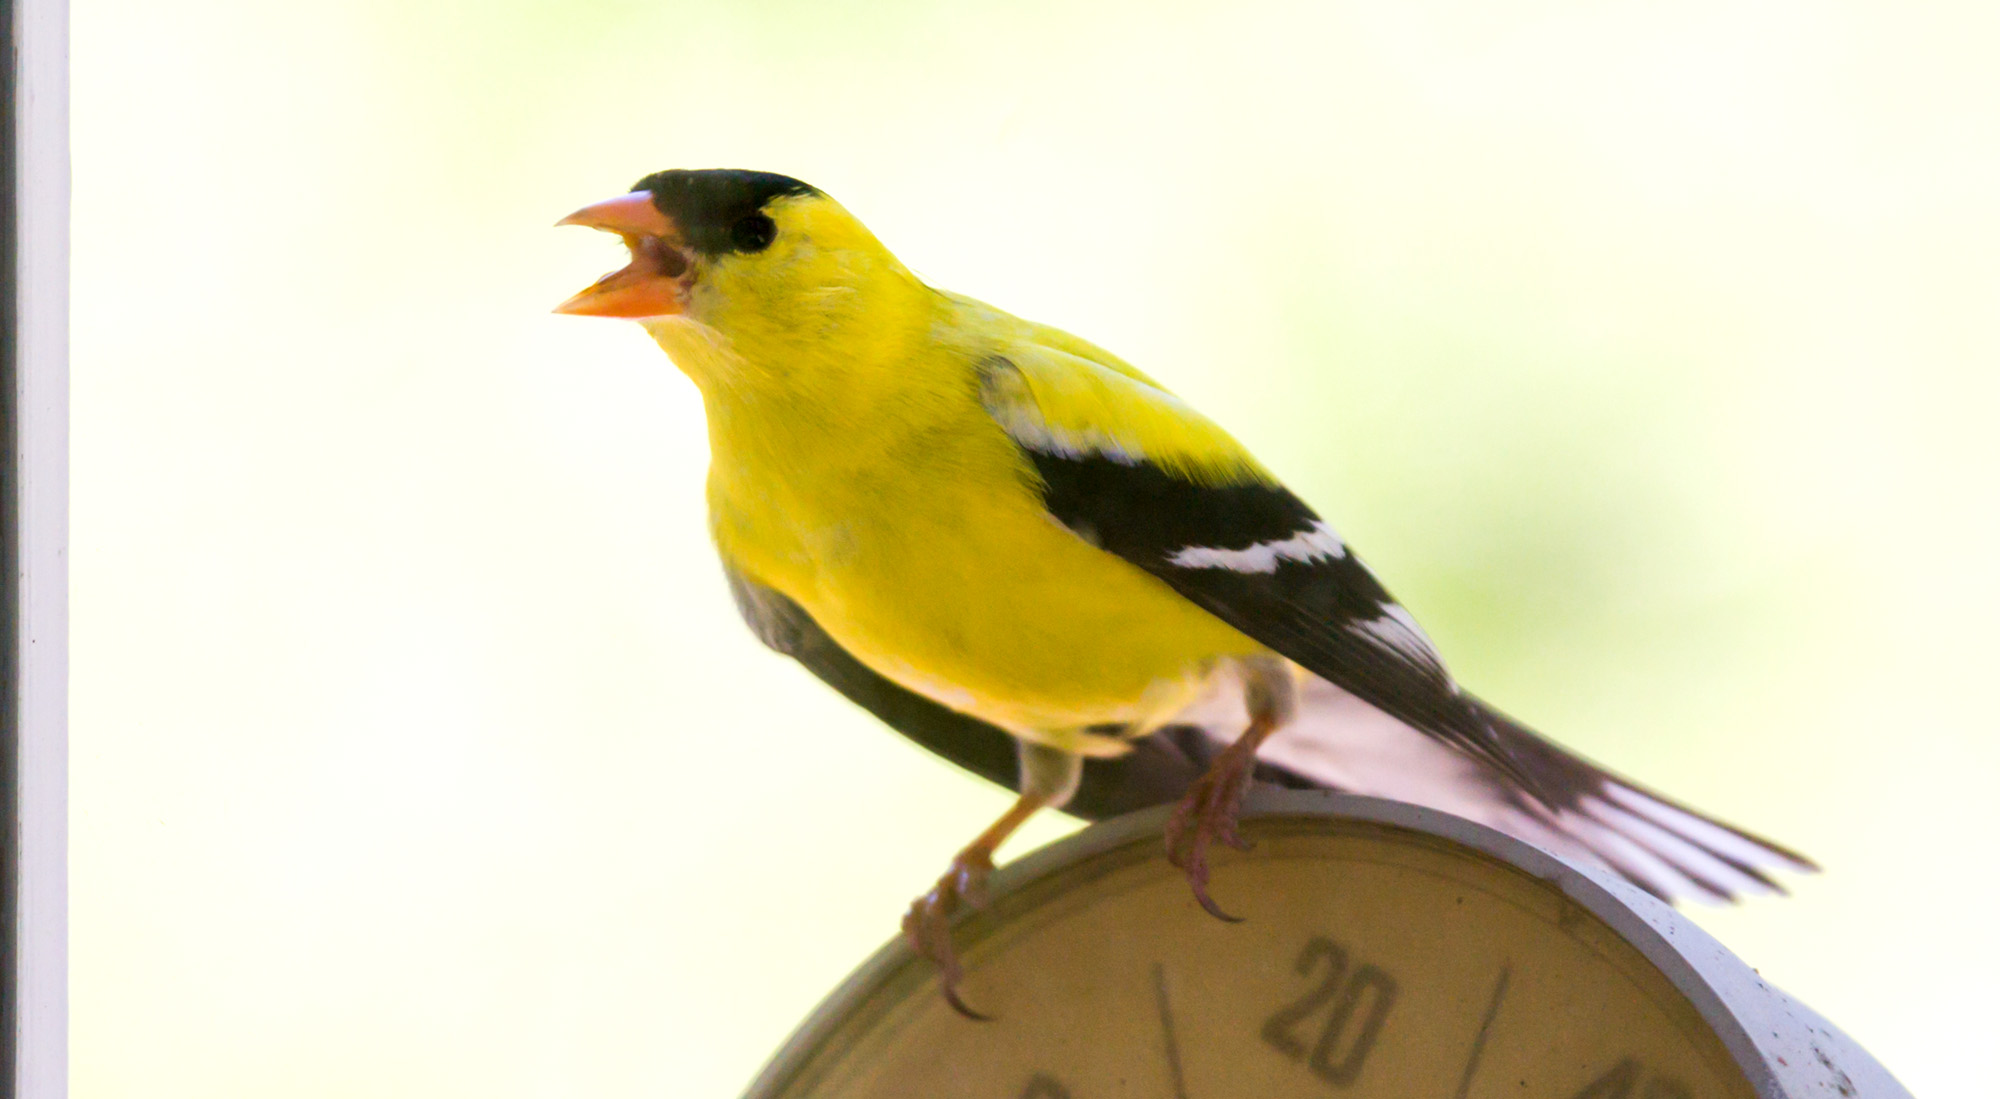 And this goldfinch was getting pretty defensive / aggressive towards his own reflection in the window pane.